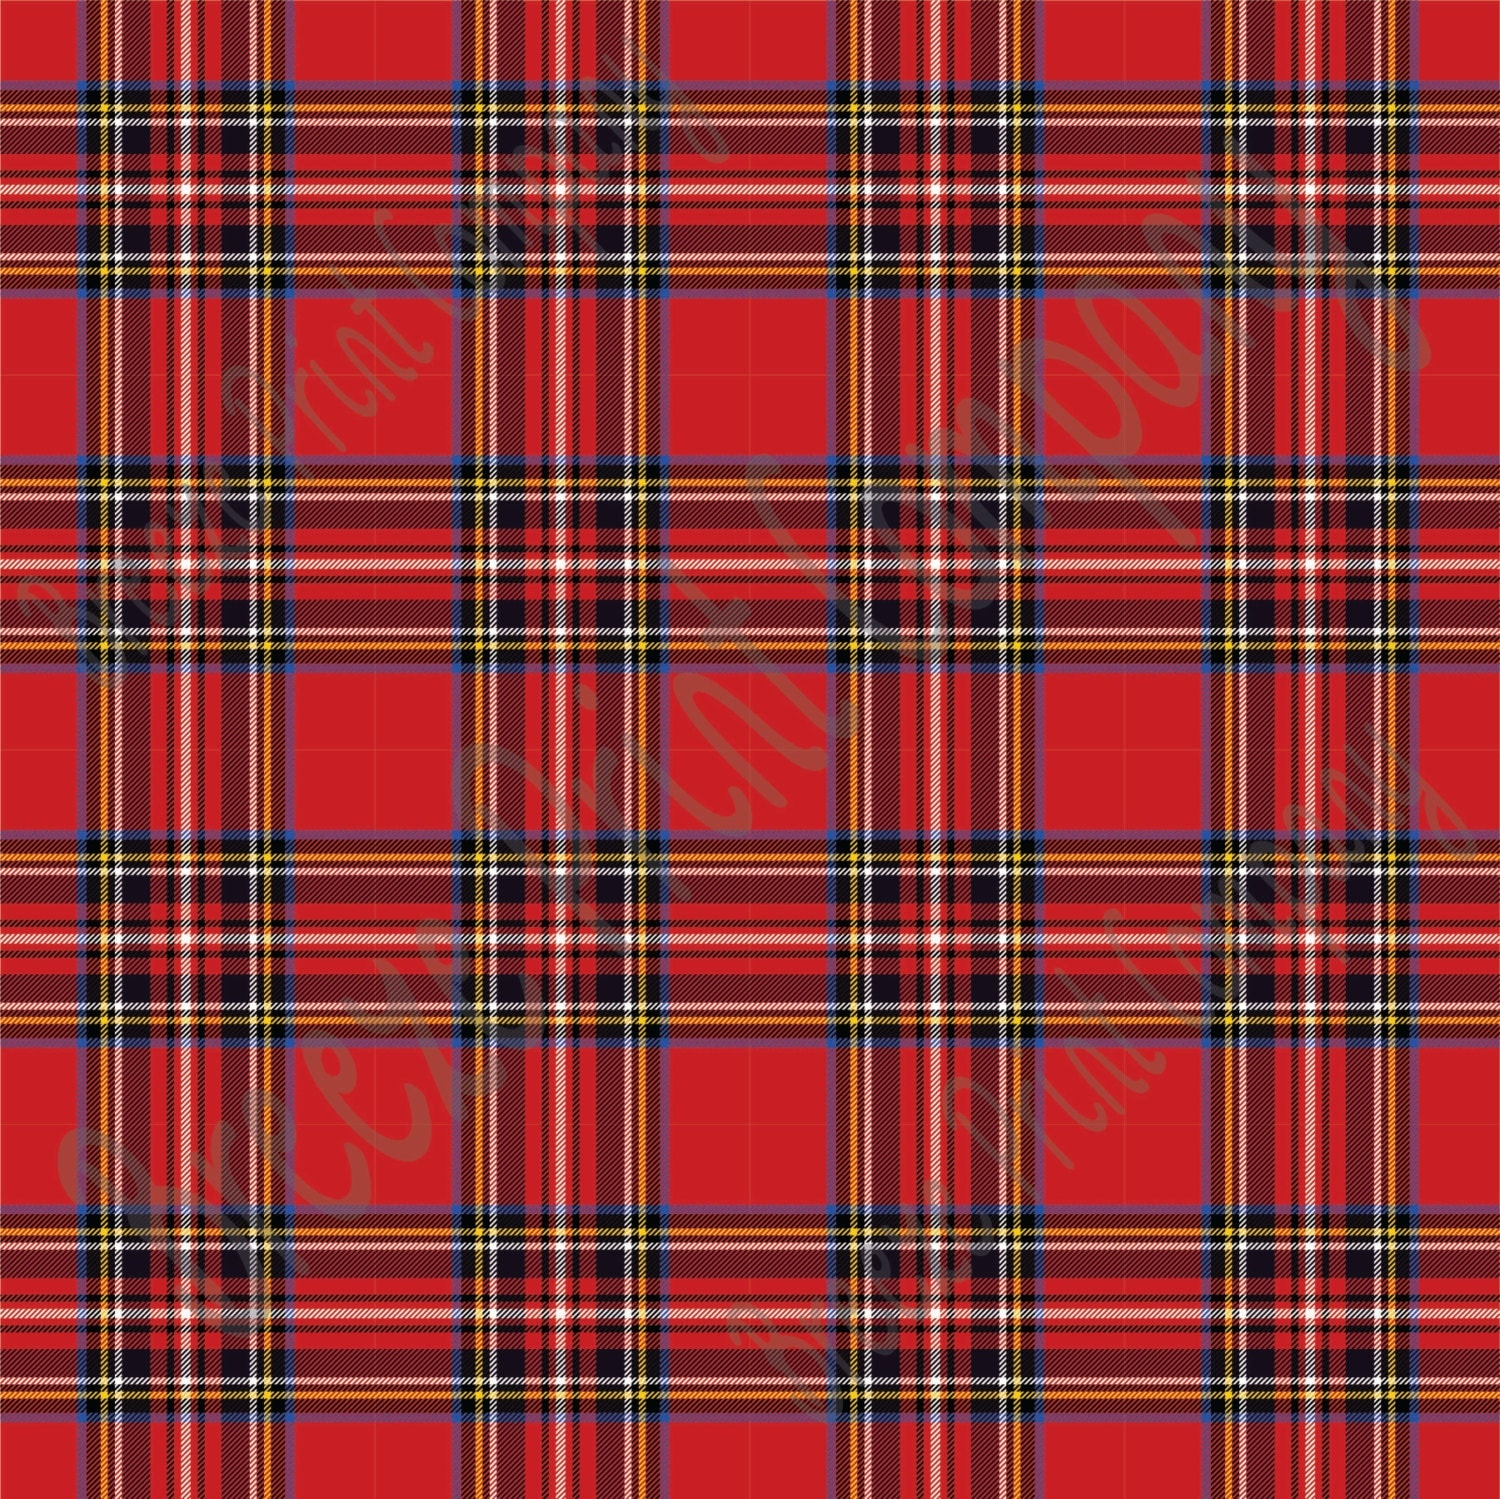 Red Tartan Plaid Heat Transfer Or Adhesive Vinyl Sheet